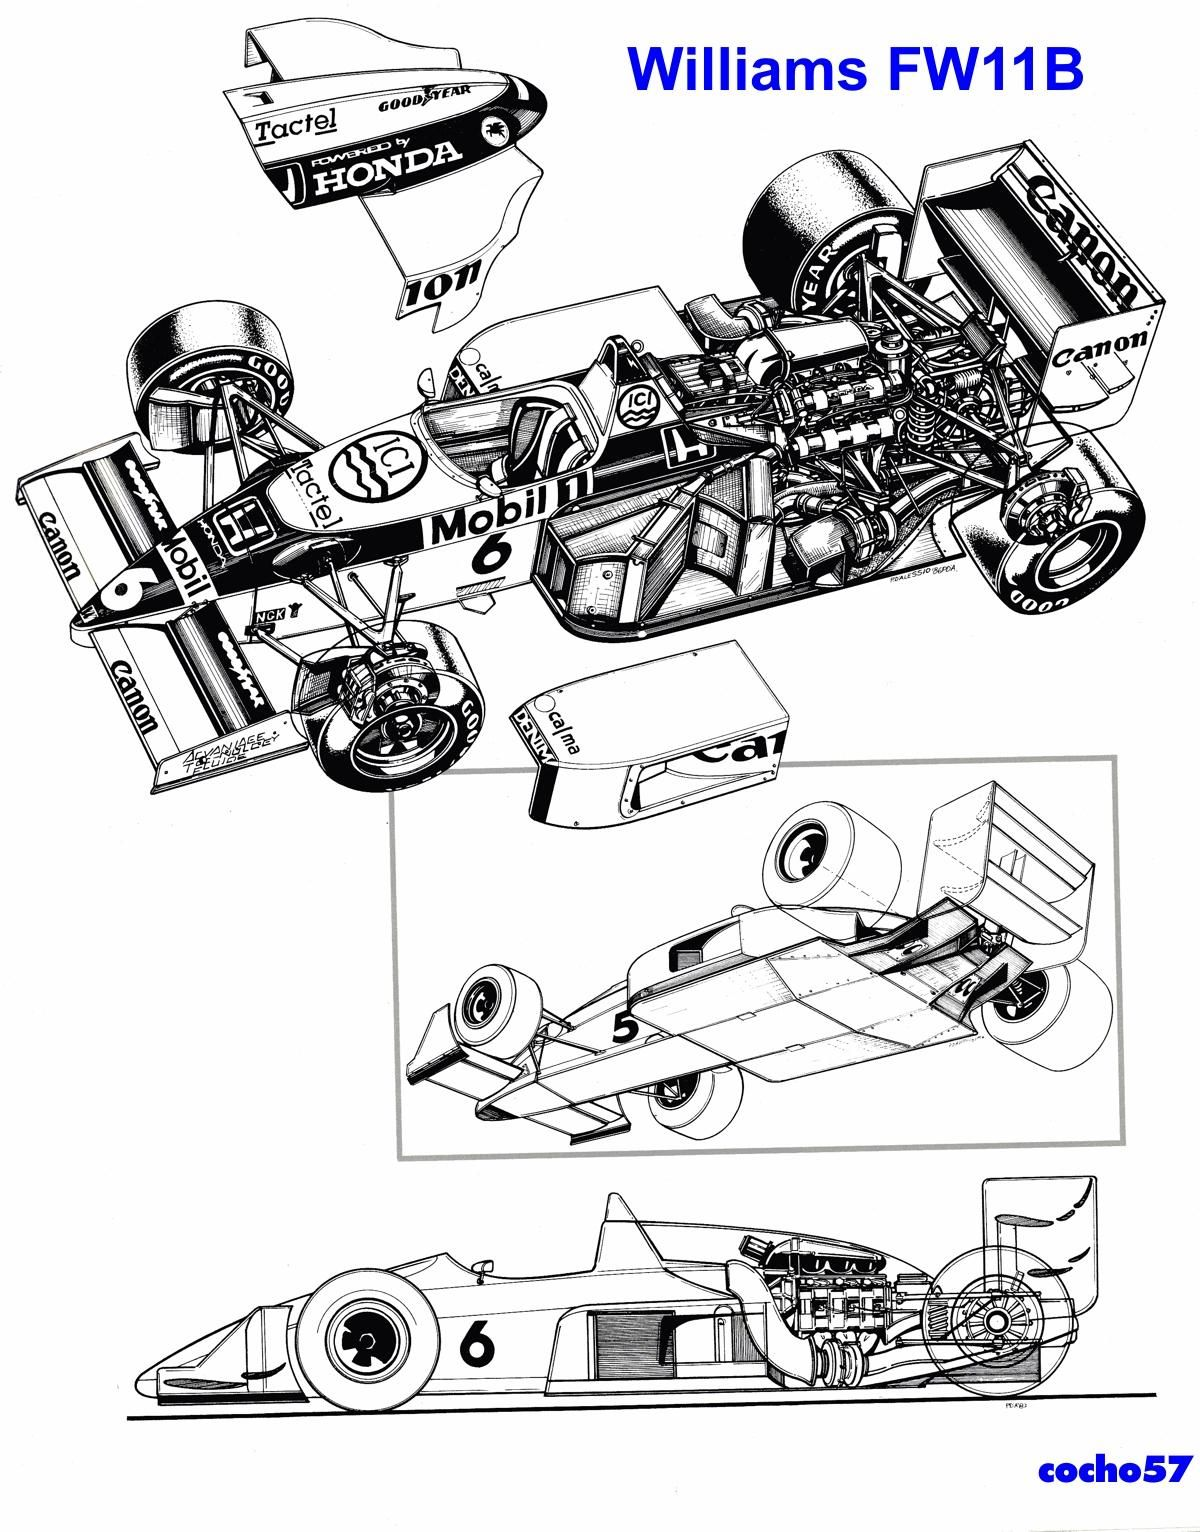 Formula 1 La Historia De Los Williams